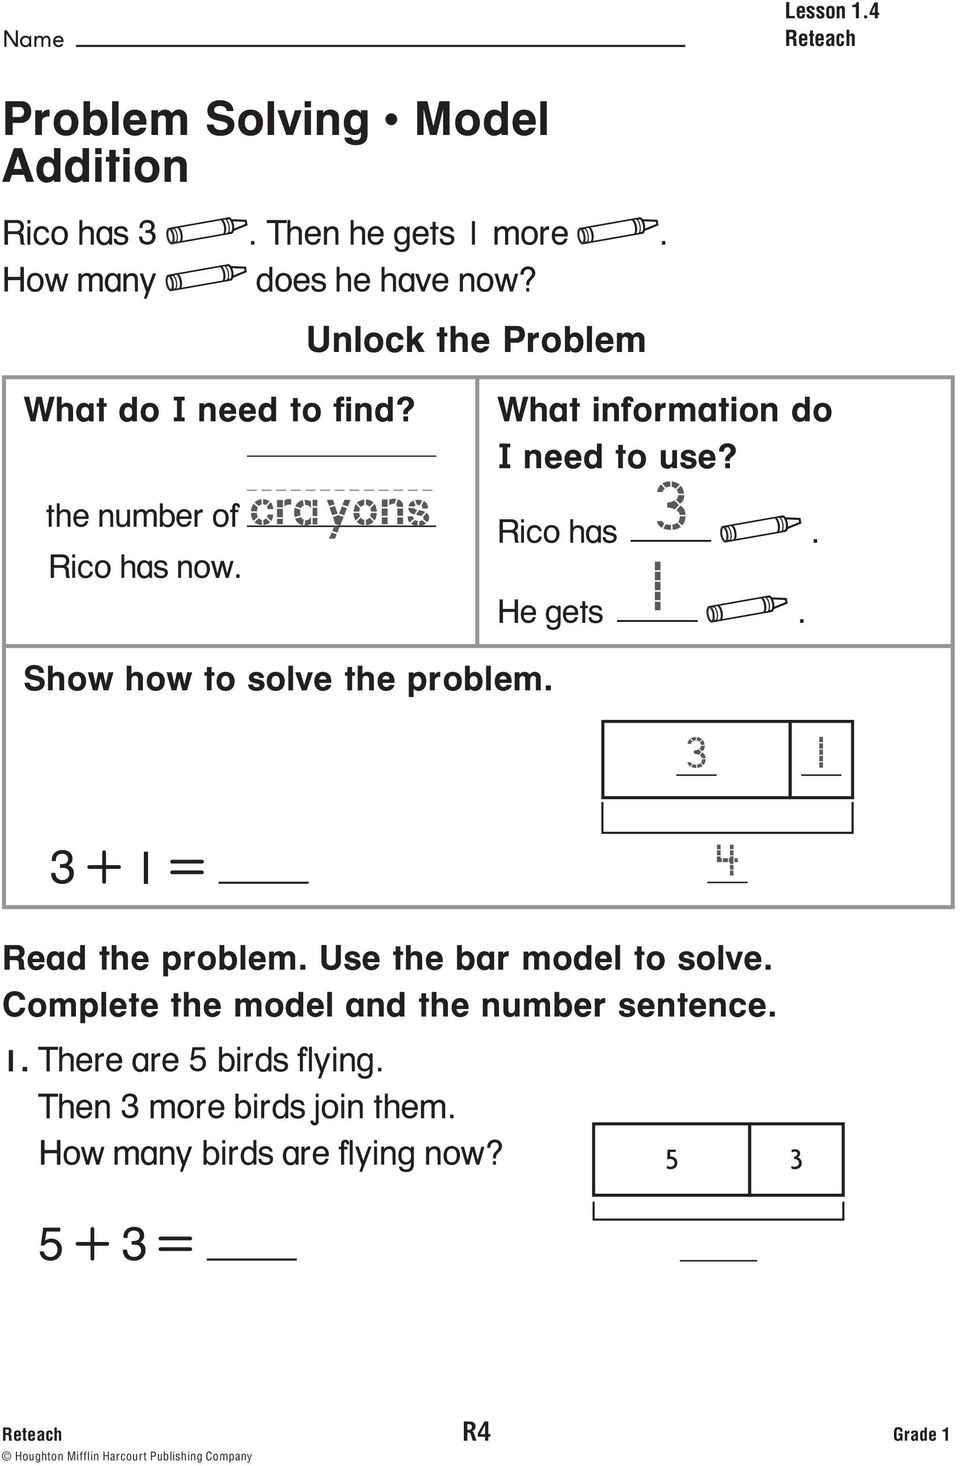 What Are Addends in Math Addition Problems?